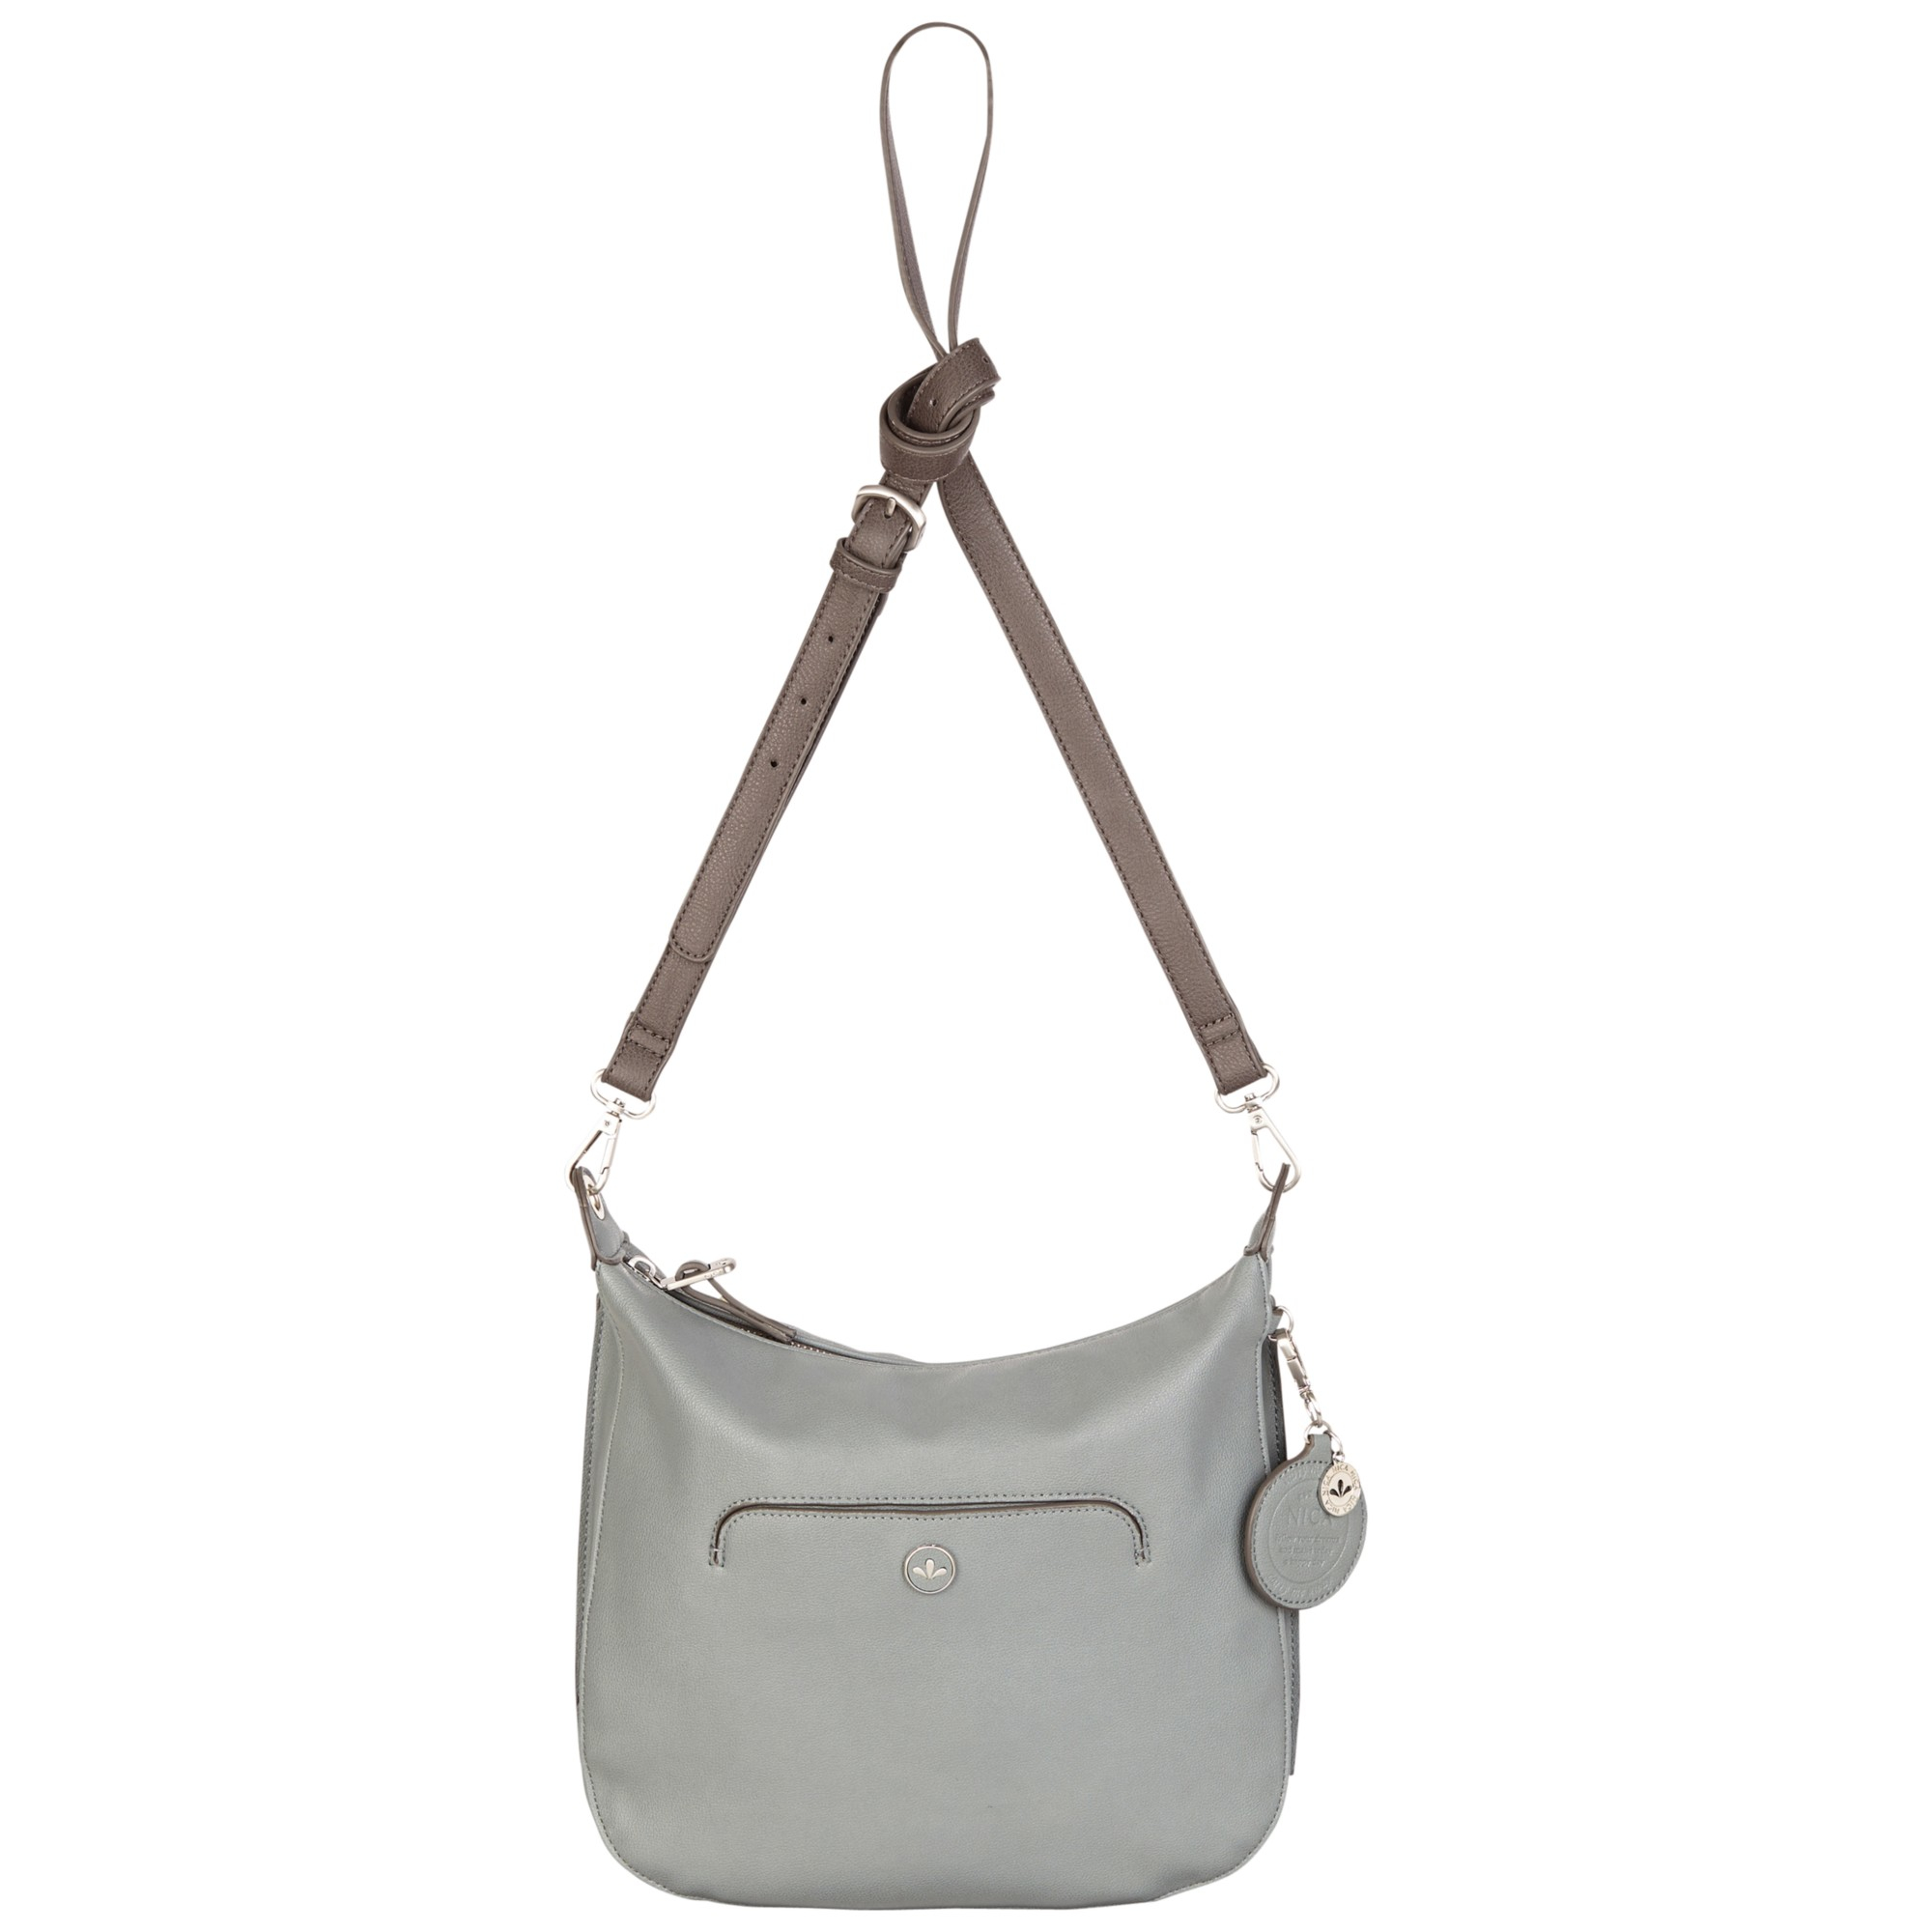 71ab0737d16 Nica Leela Large Across Body Bag in Gray - Lyst